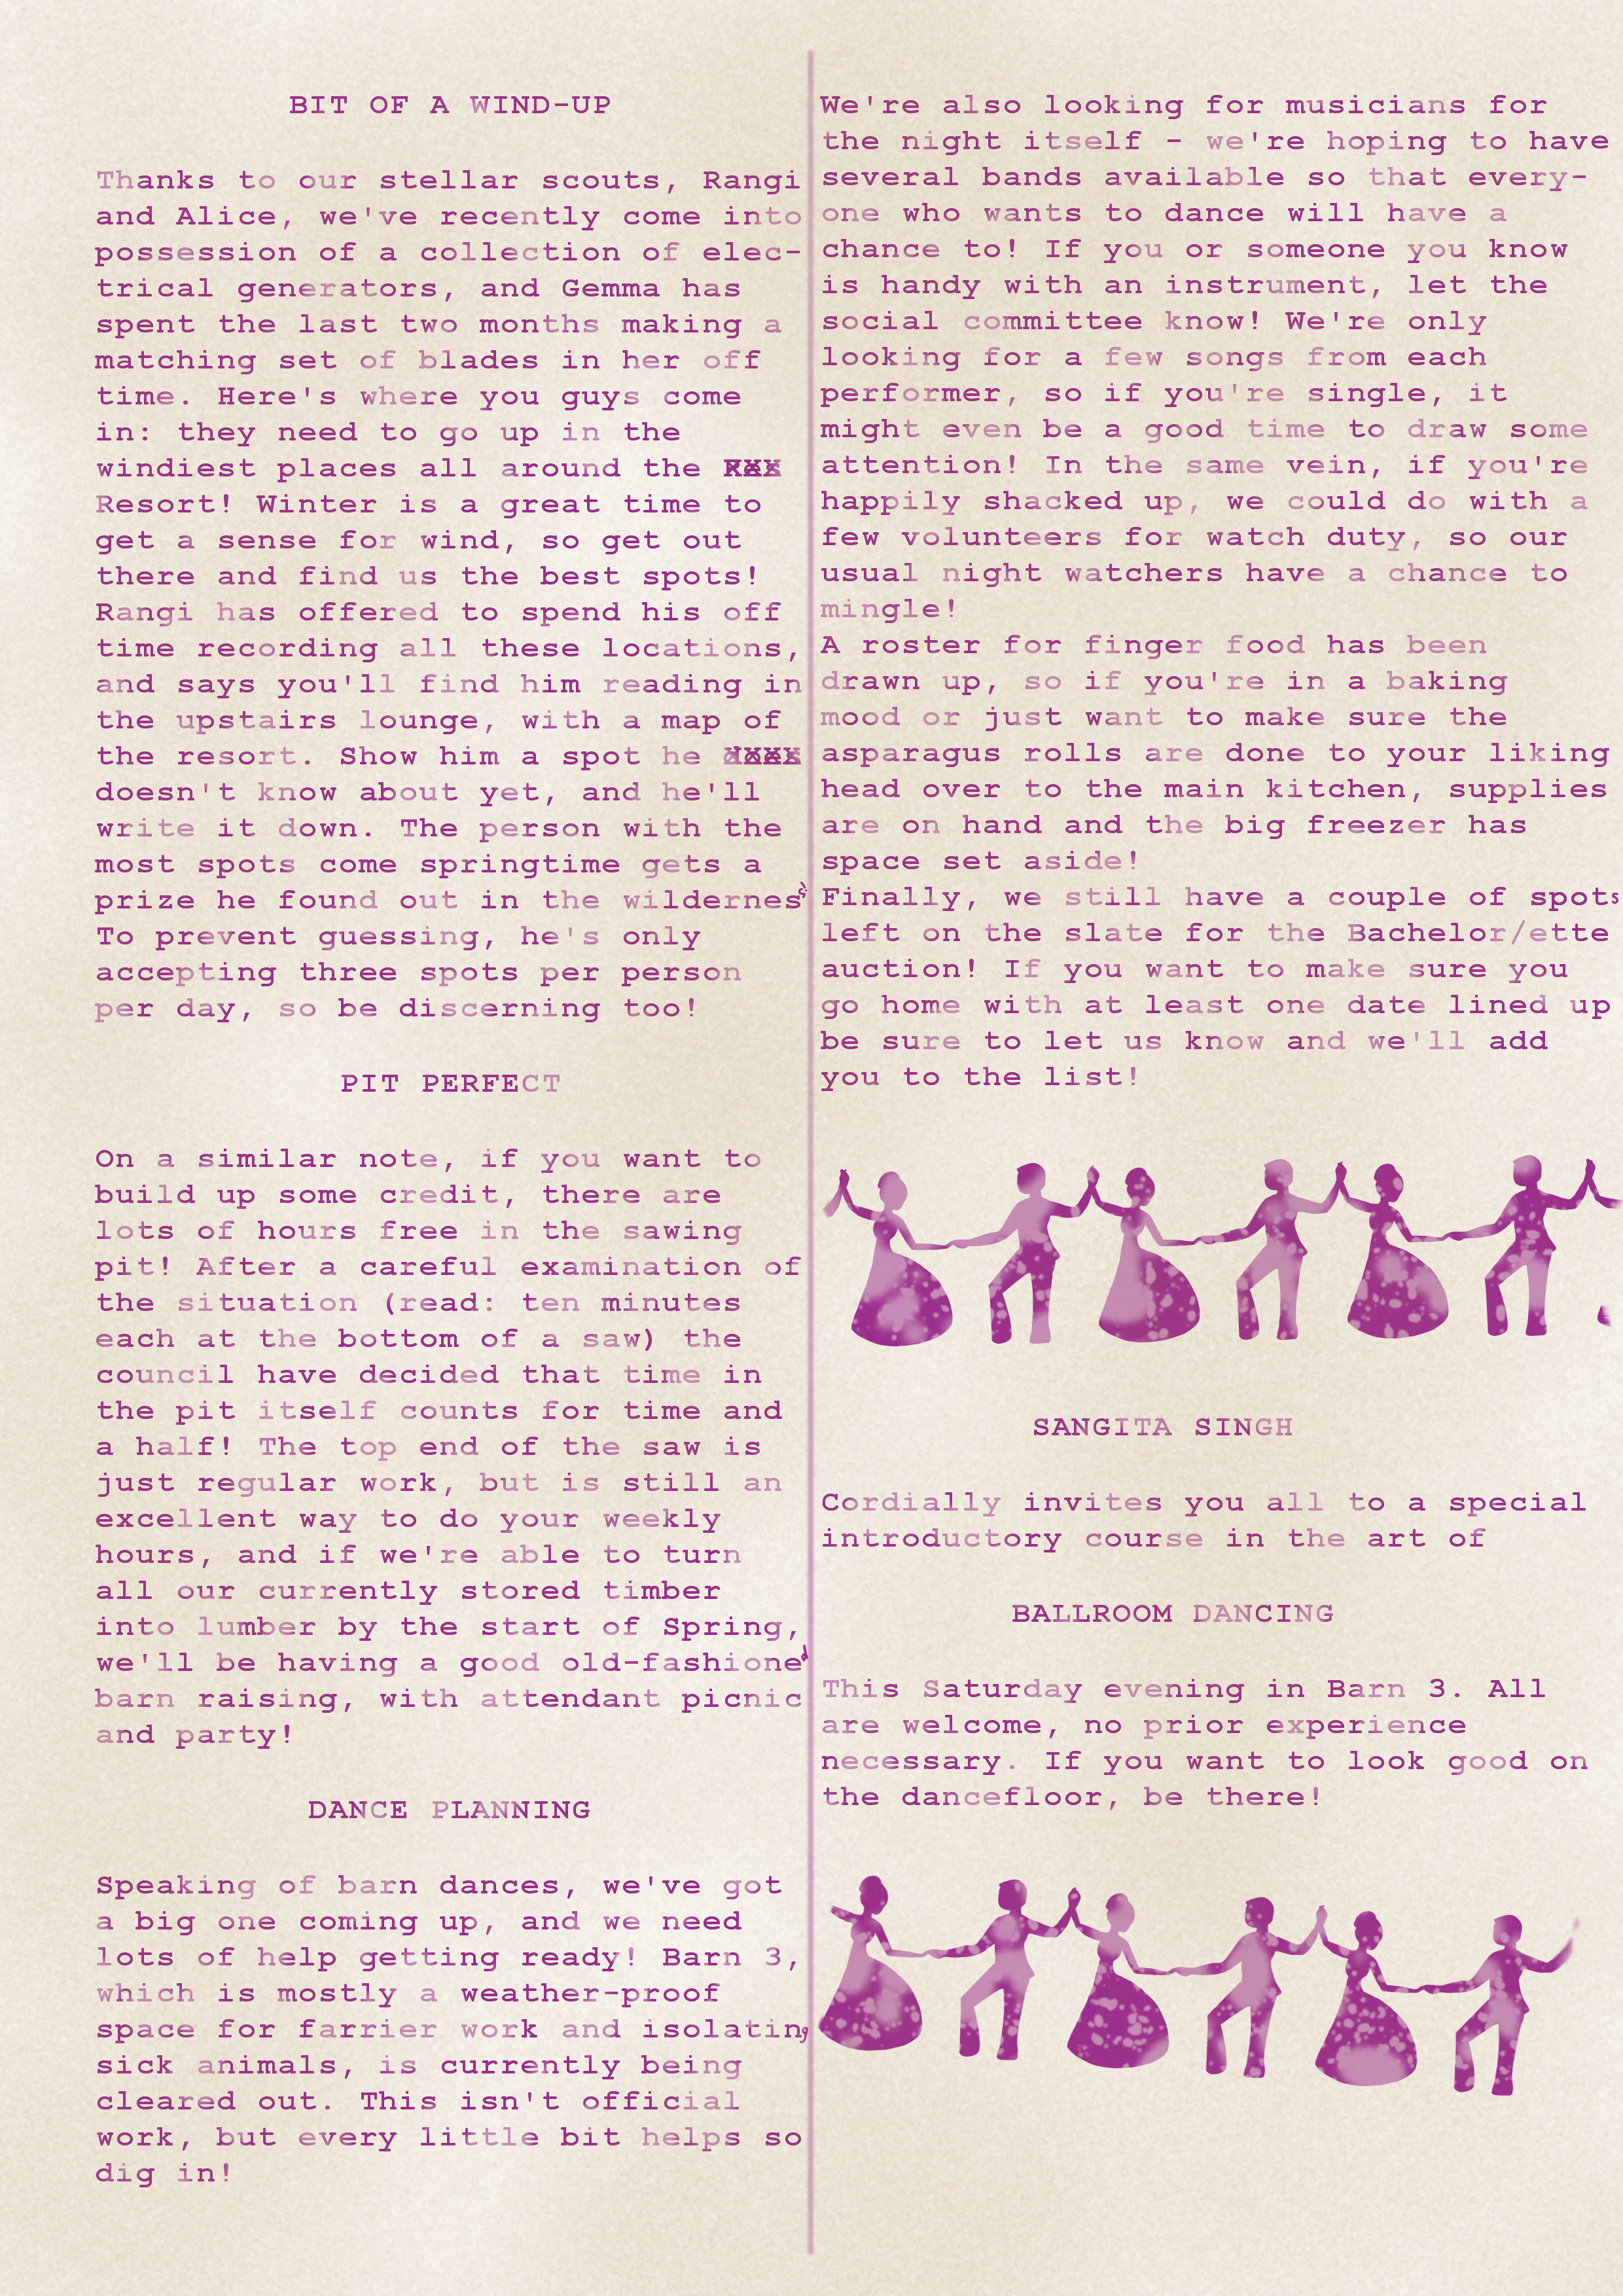 Second page of a stained and poorly printed newsletter. For full description and text see link from first image.